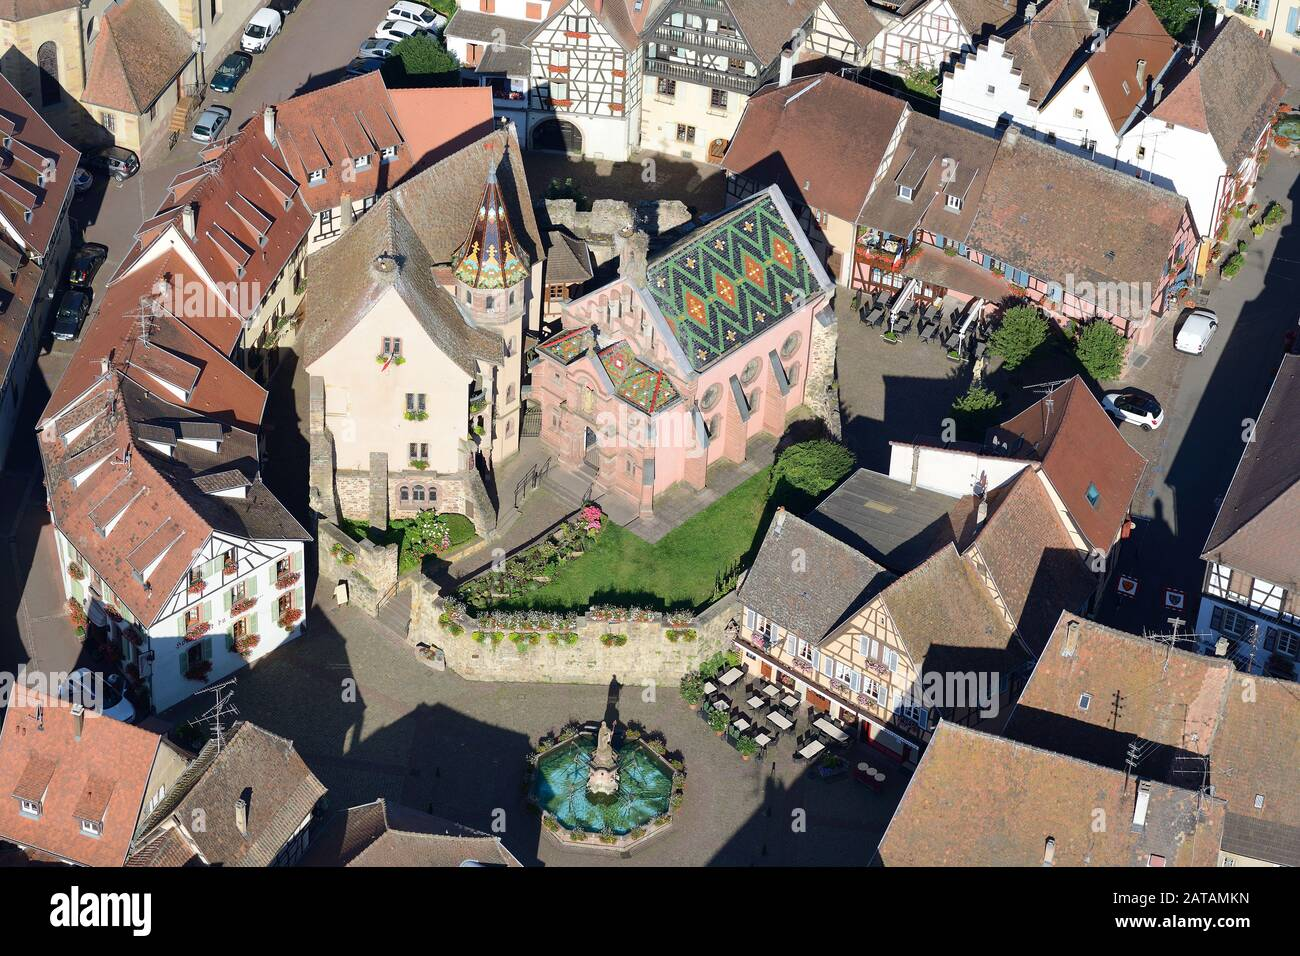 AERIAL VIEW - Castle of Saint-Léon-Pfalz and traditional half-timbered homes. Eguisheim, Haut-Rhin, Alsace, Grand Est, France. Stock Photo